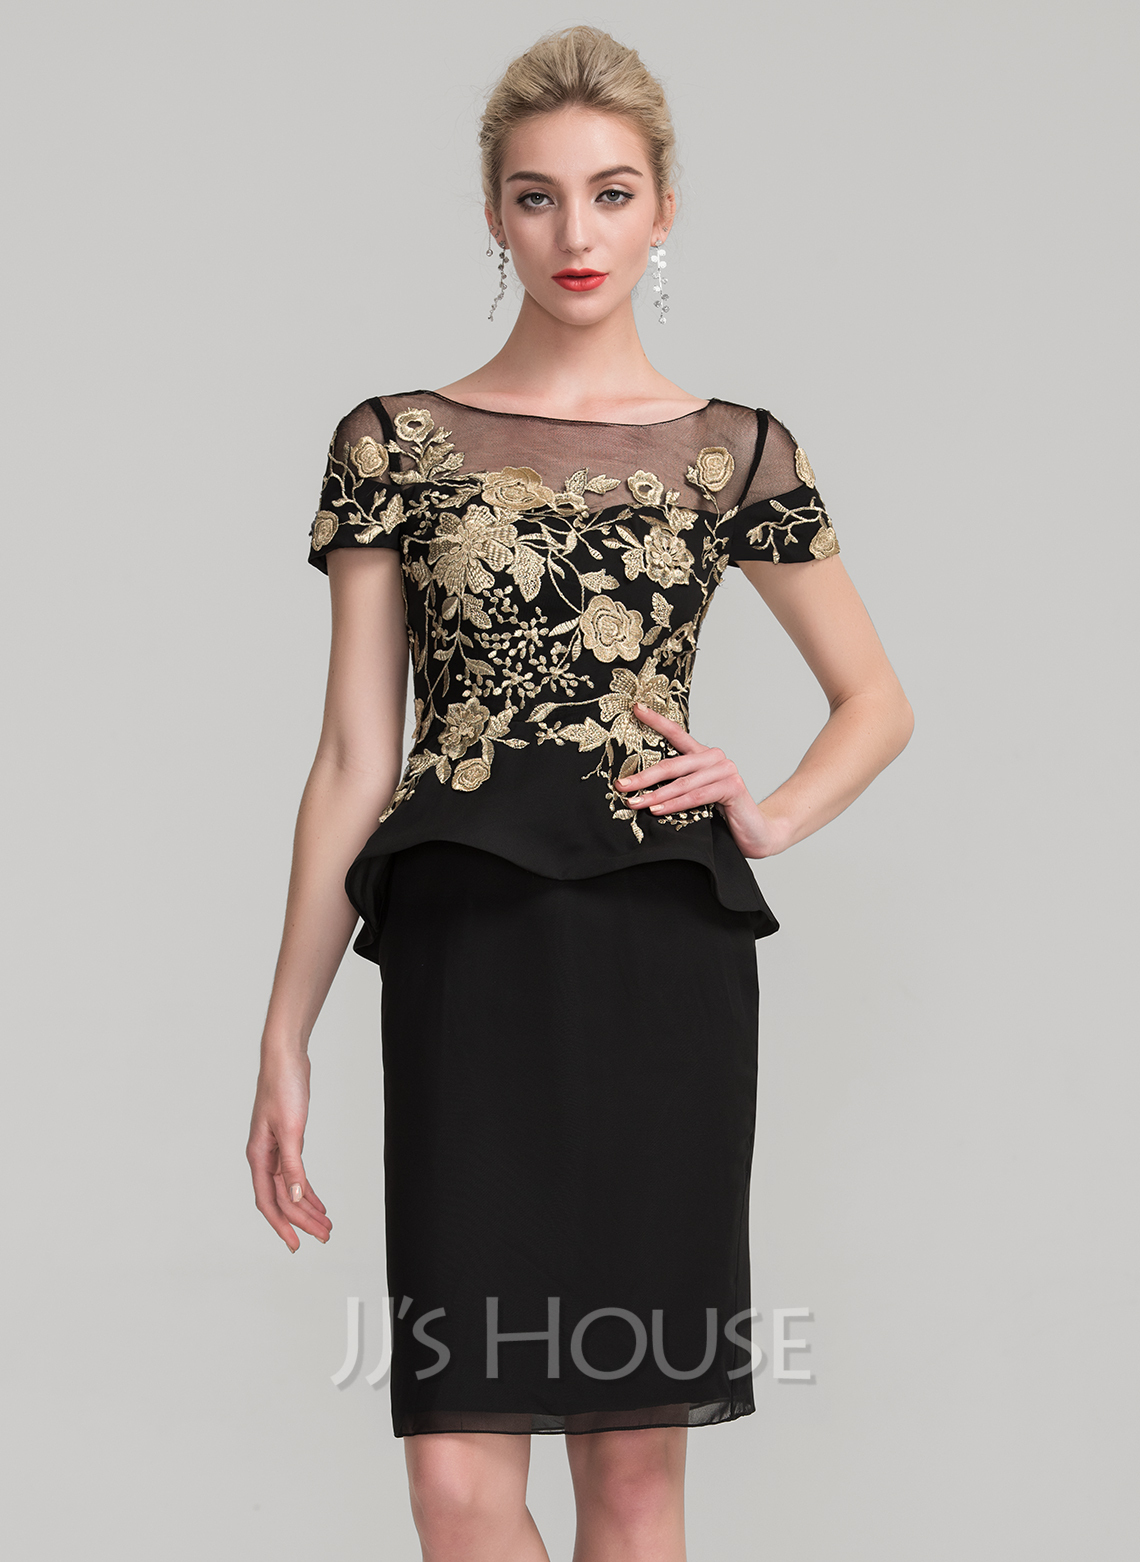 Sheath/Column Scoop Neck Knee-Length Chiffon Mother of the Bride Dress With Lace Cascading Ruffles